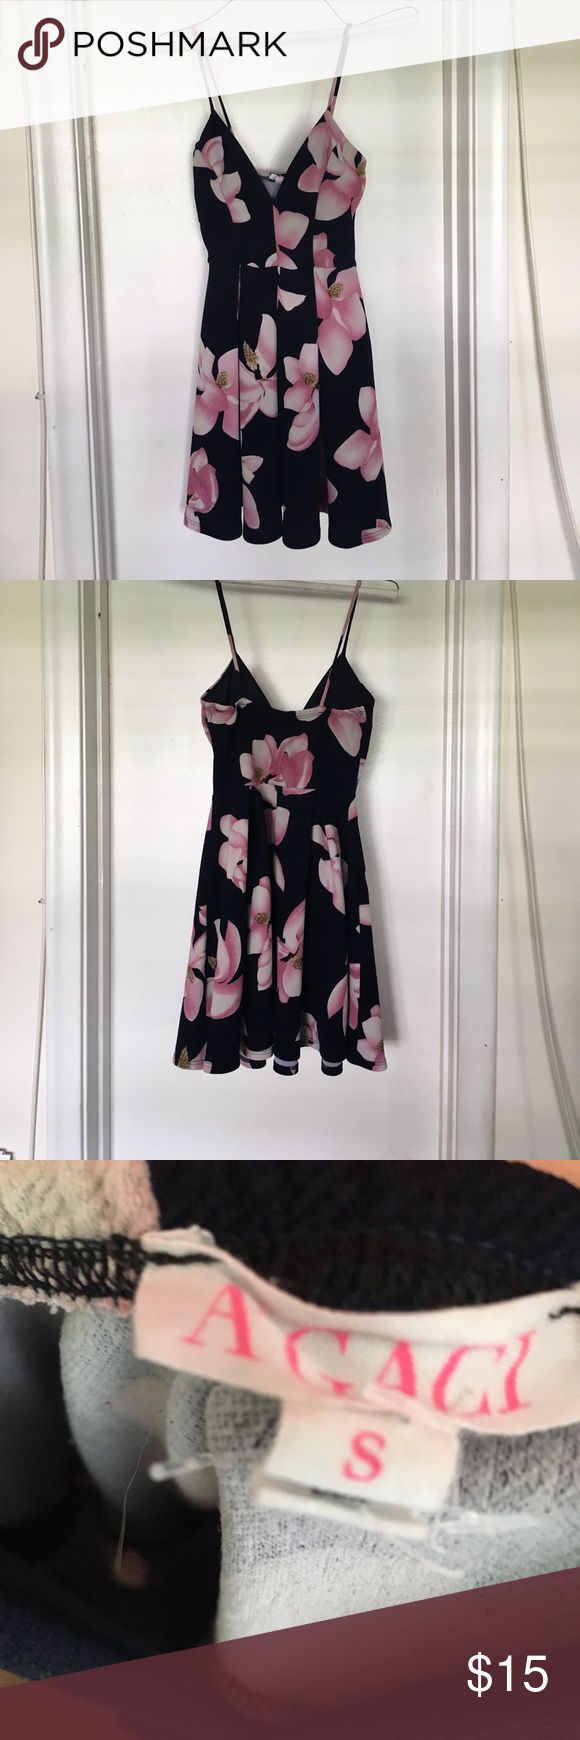 """VERY PRETTY A'GACI NAVY AND PINK FLORAL DRESS. Reposhing this A'GACI very pretty navy and pink floral dress. Loved the print! So sad! Tag says Size Small however it's a small for I'd say a young teen or a super tiny person. Measures approximately 10"""" across and 16"""" from line a little above the waist.. 96% Polyester, 4% Spandex. Great condition. Dresses Mini"""